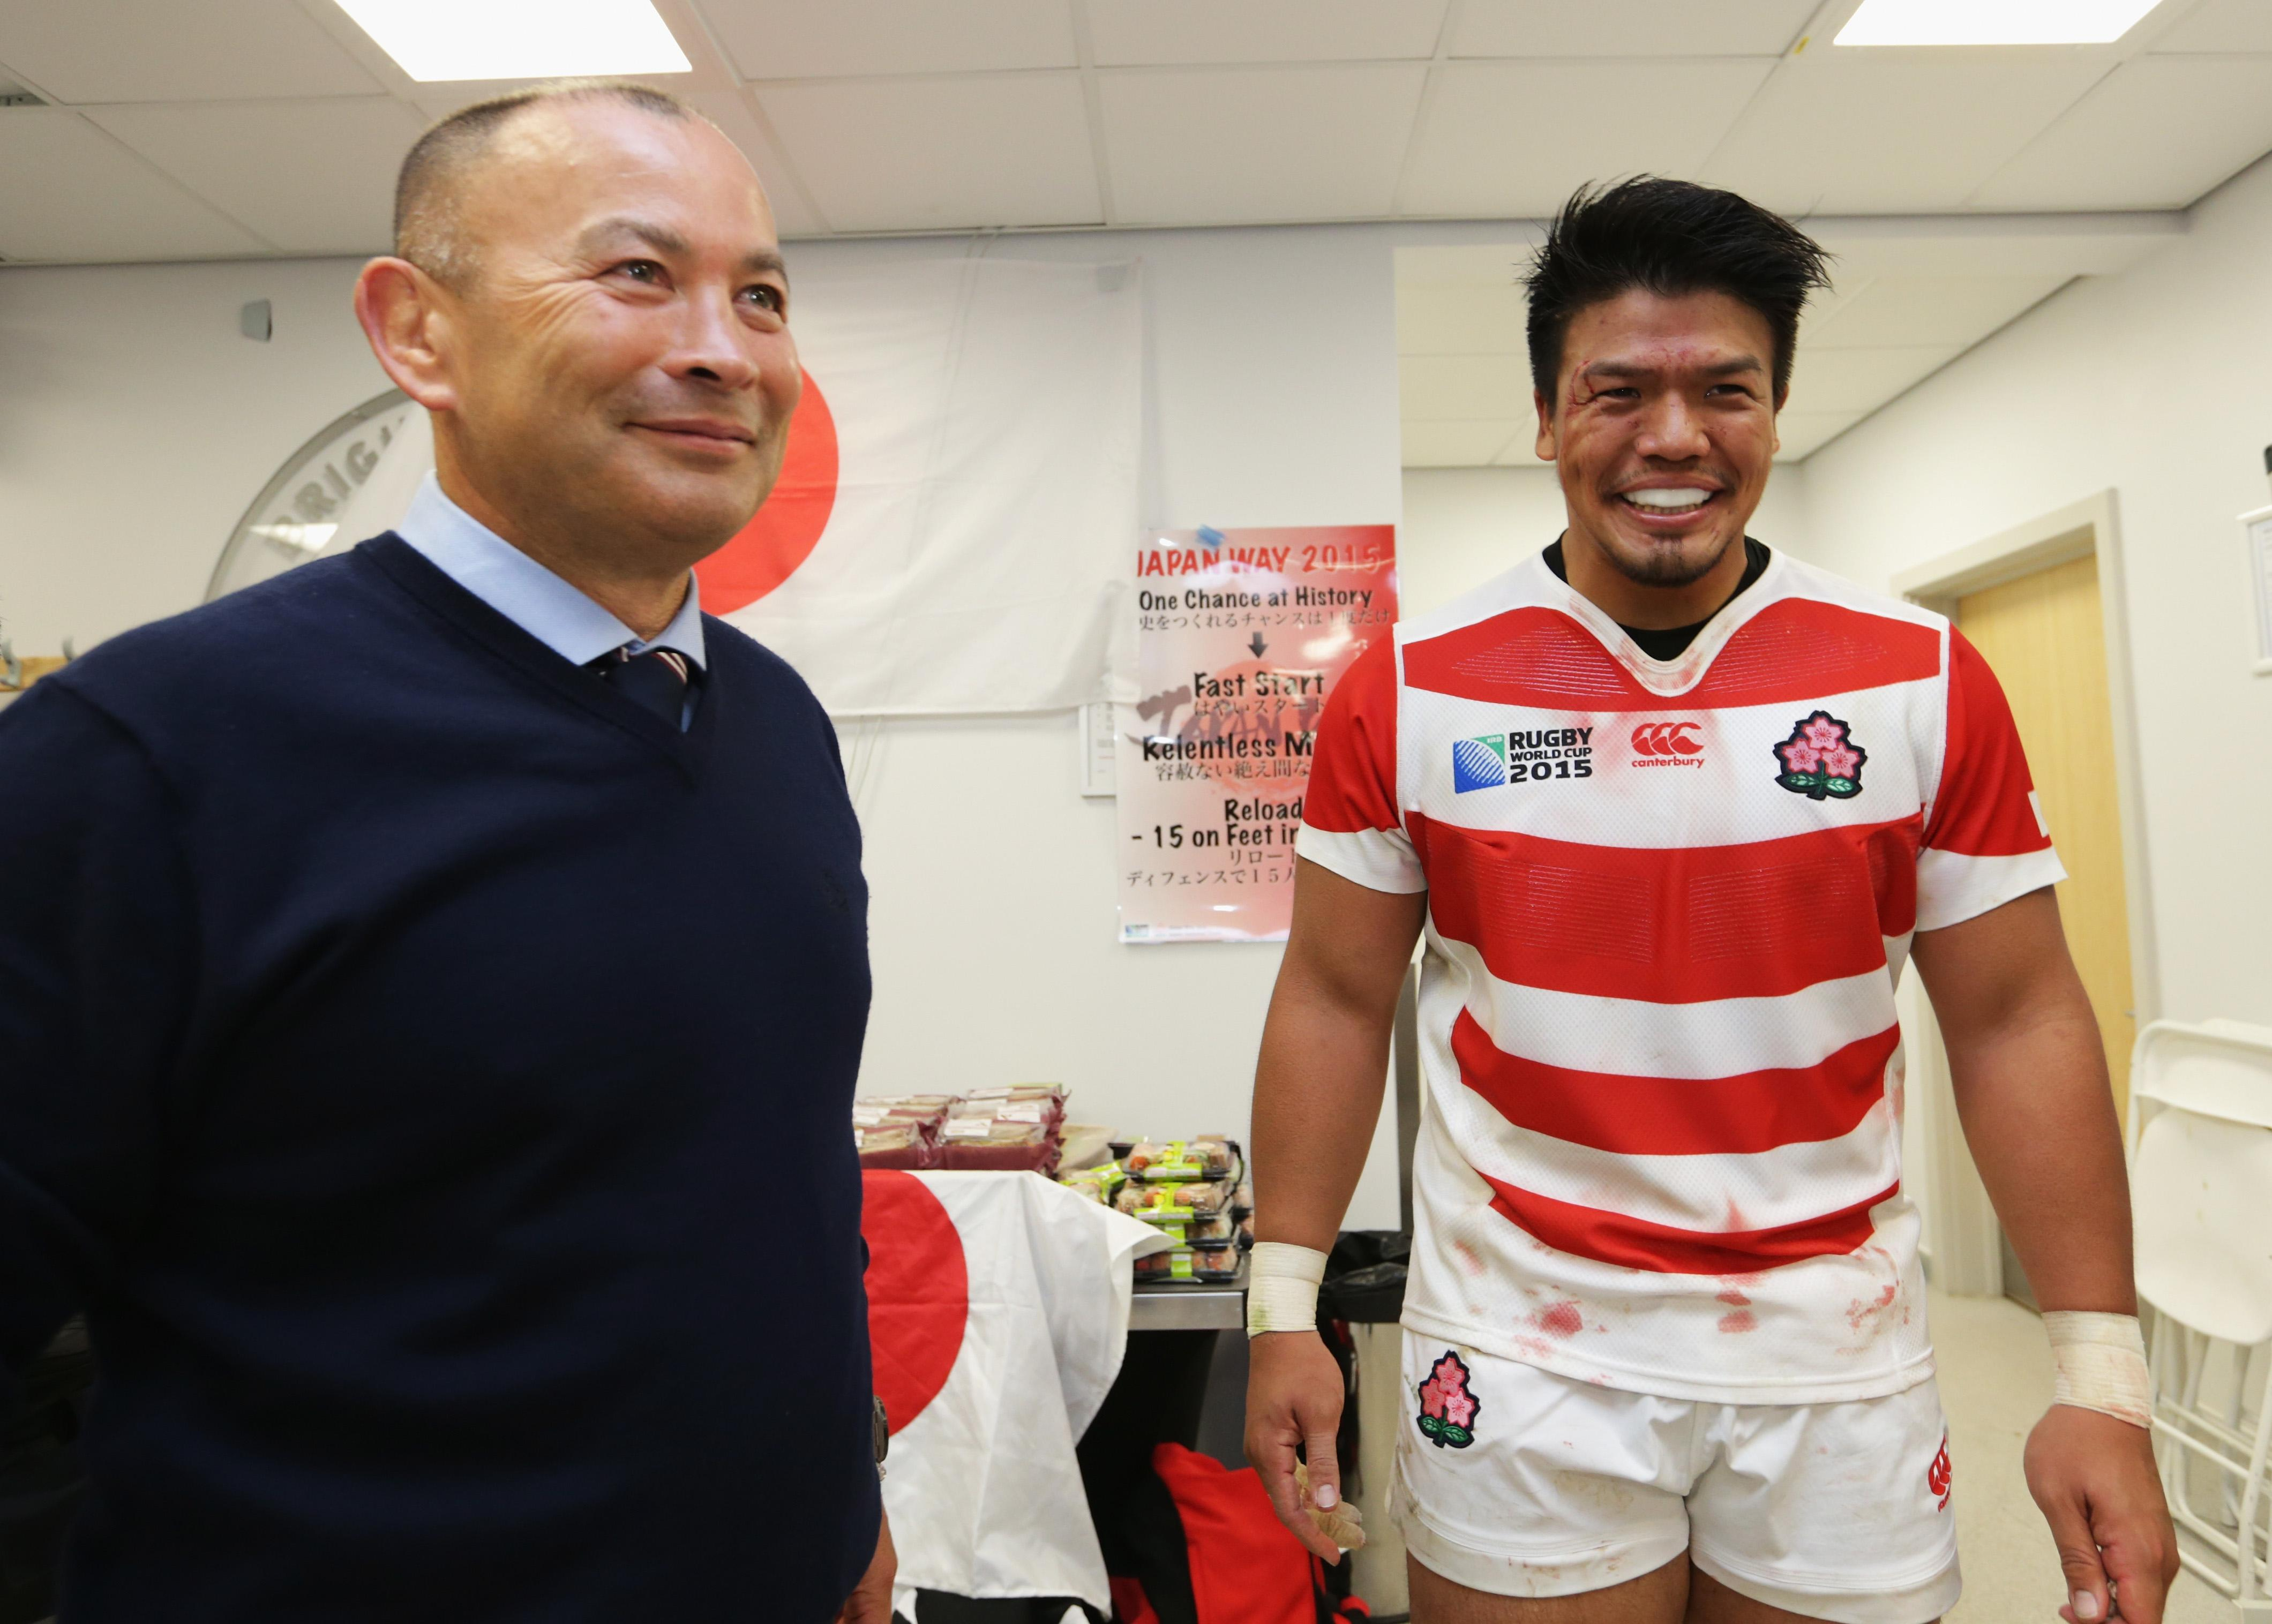 Jones bossed Japan to their most famous ever win - over South Africa in the 2015 World Cup